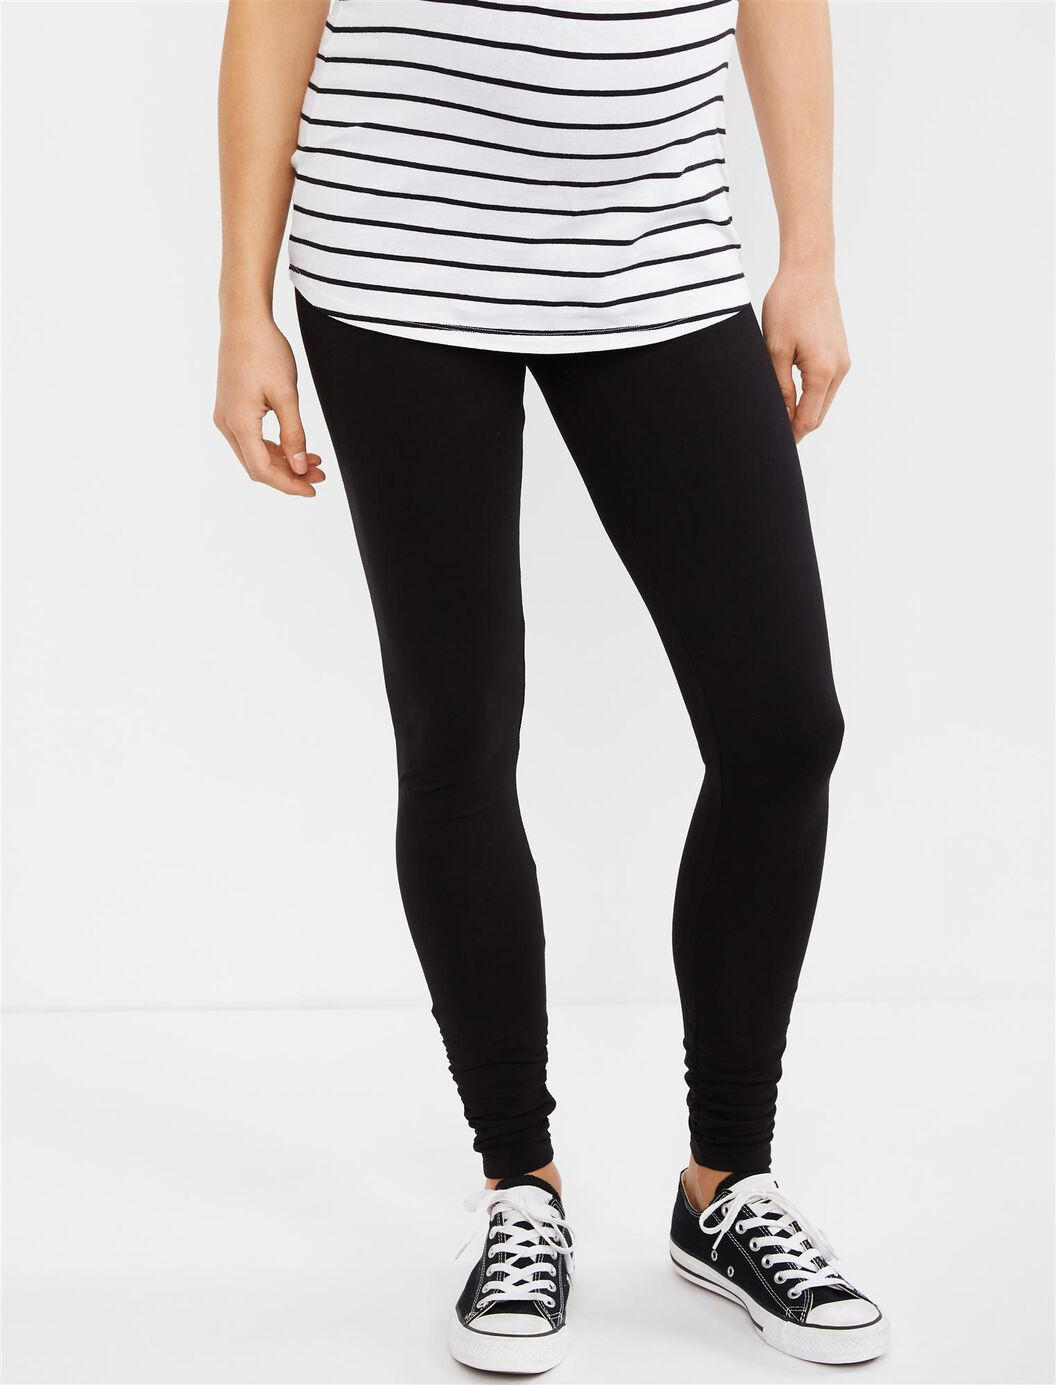 Secret Fit Belly Ruched Maternity Leggings at Motherhood Maternity in Victor, NY | Tuggl